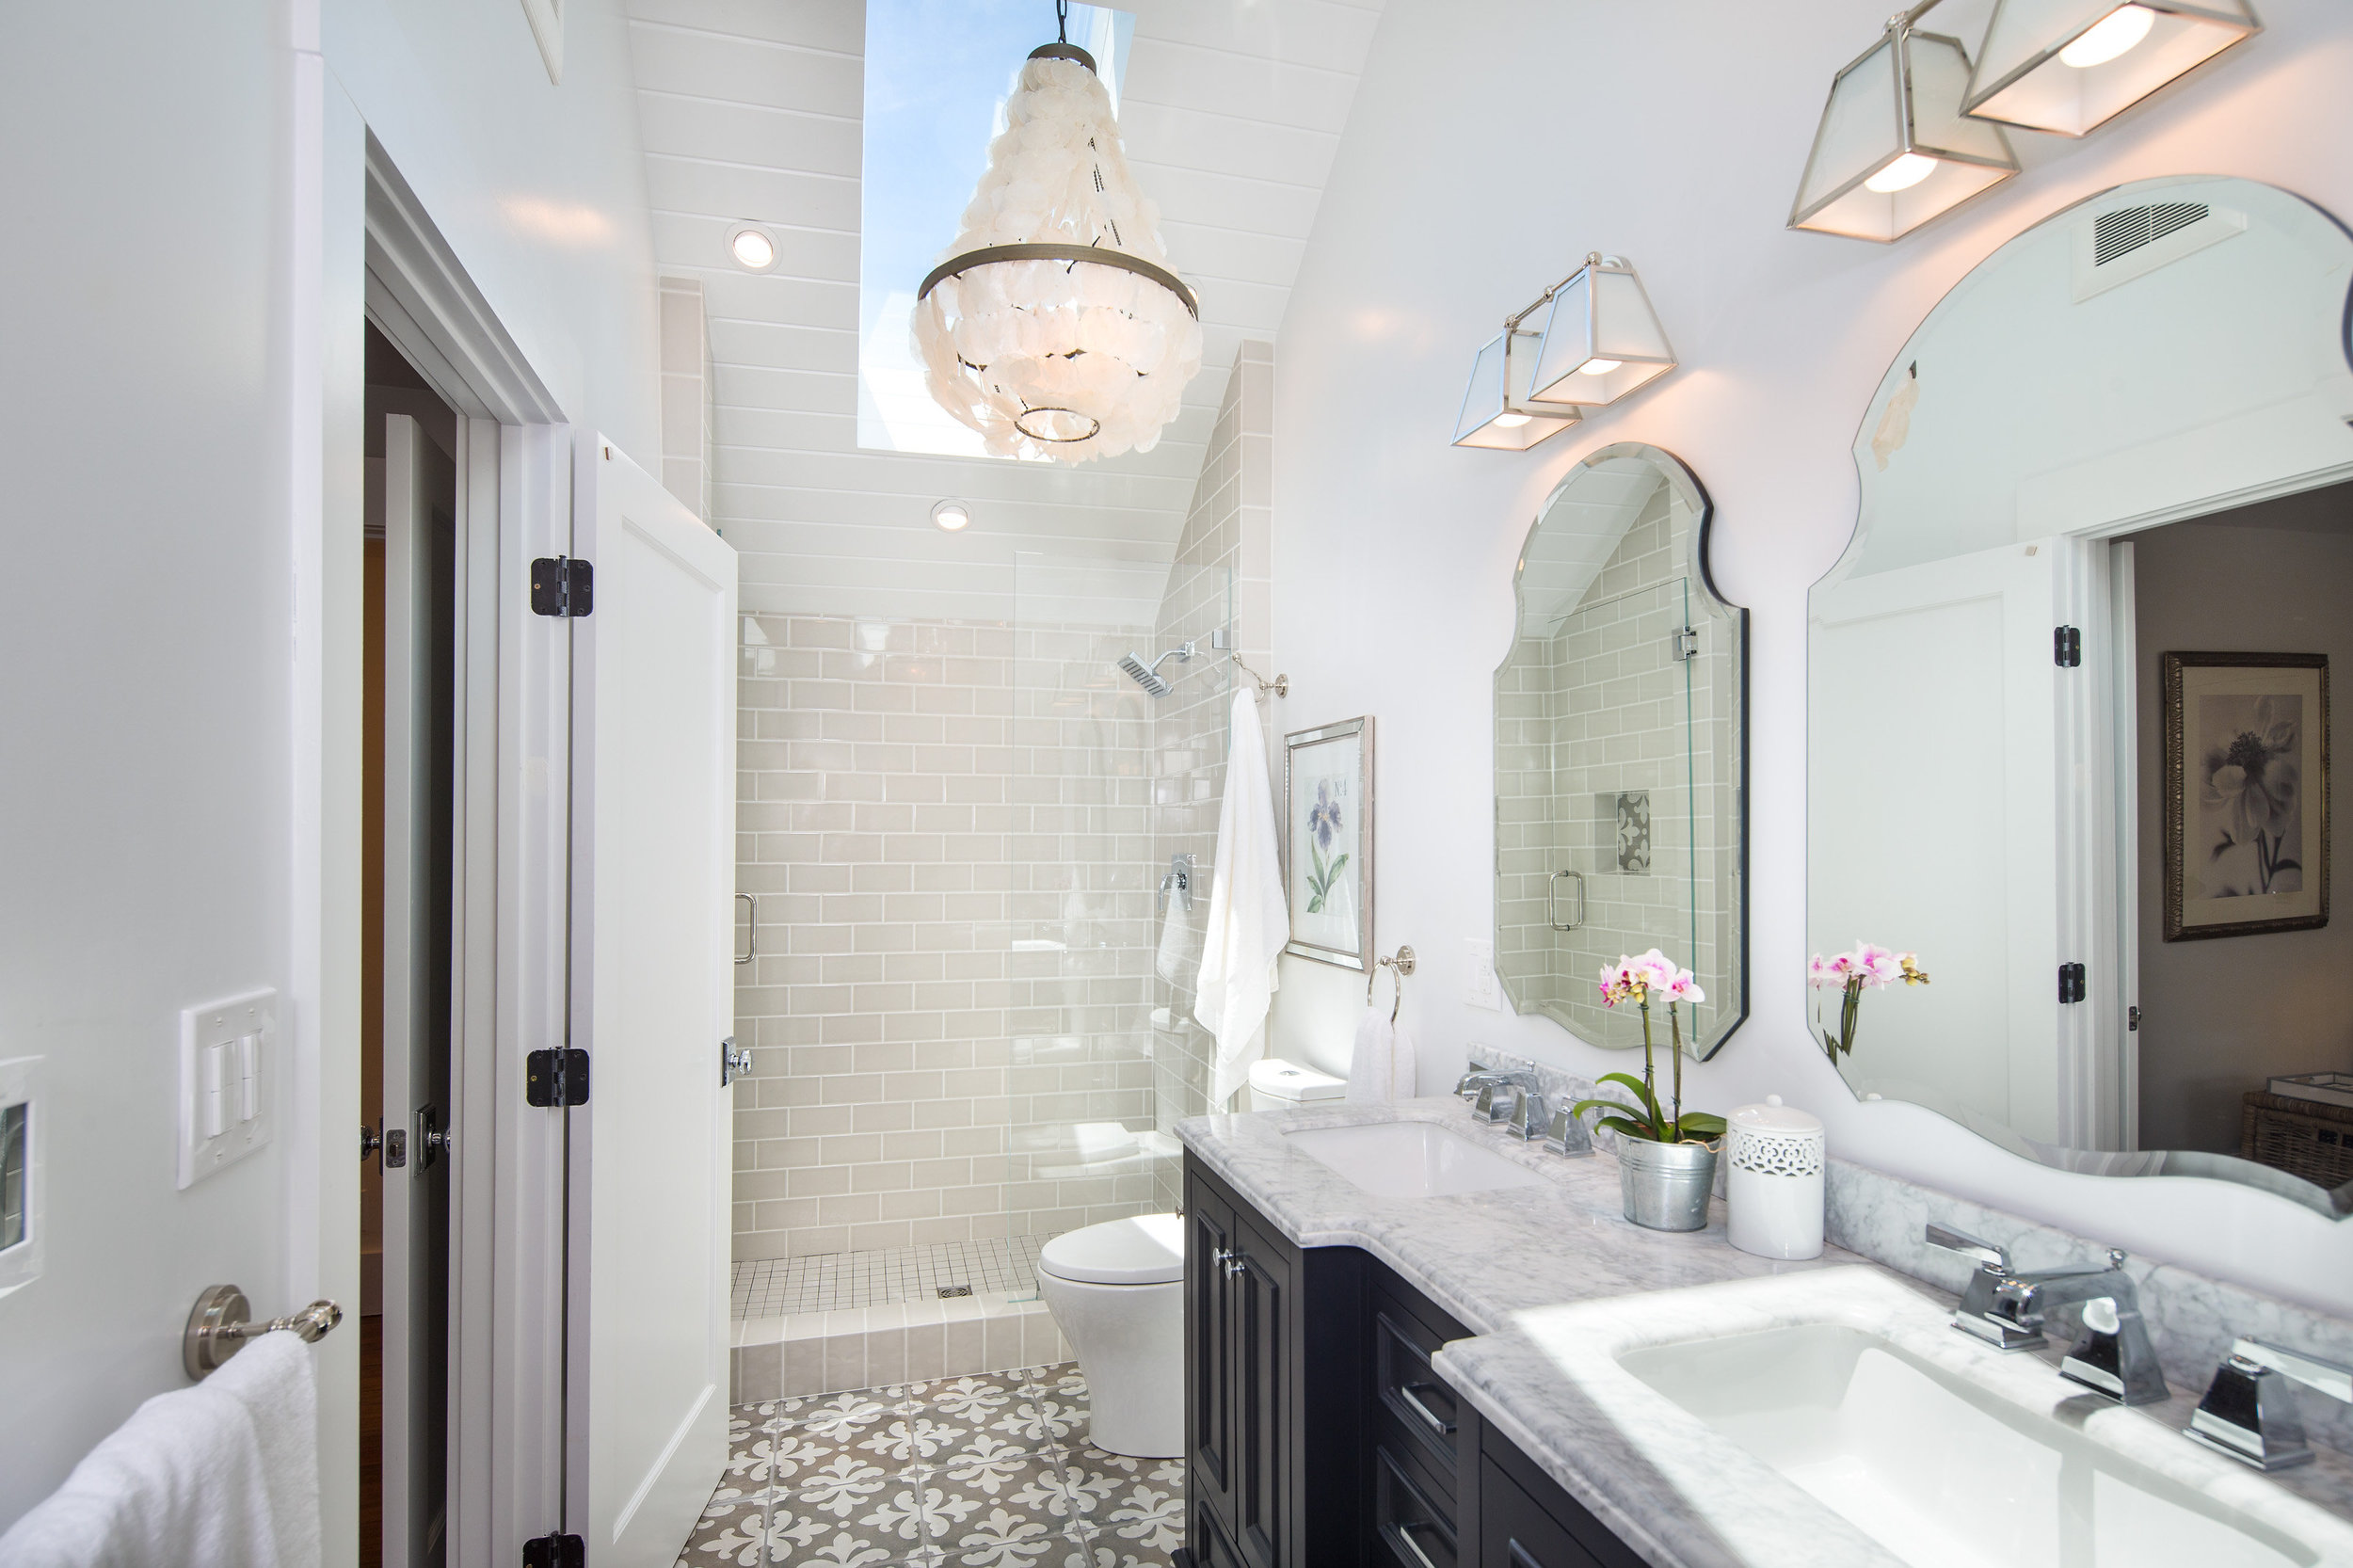 before and after bathroom renovation ideas in Oakland, Glenview